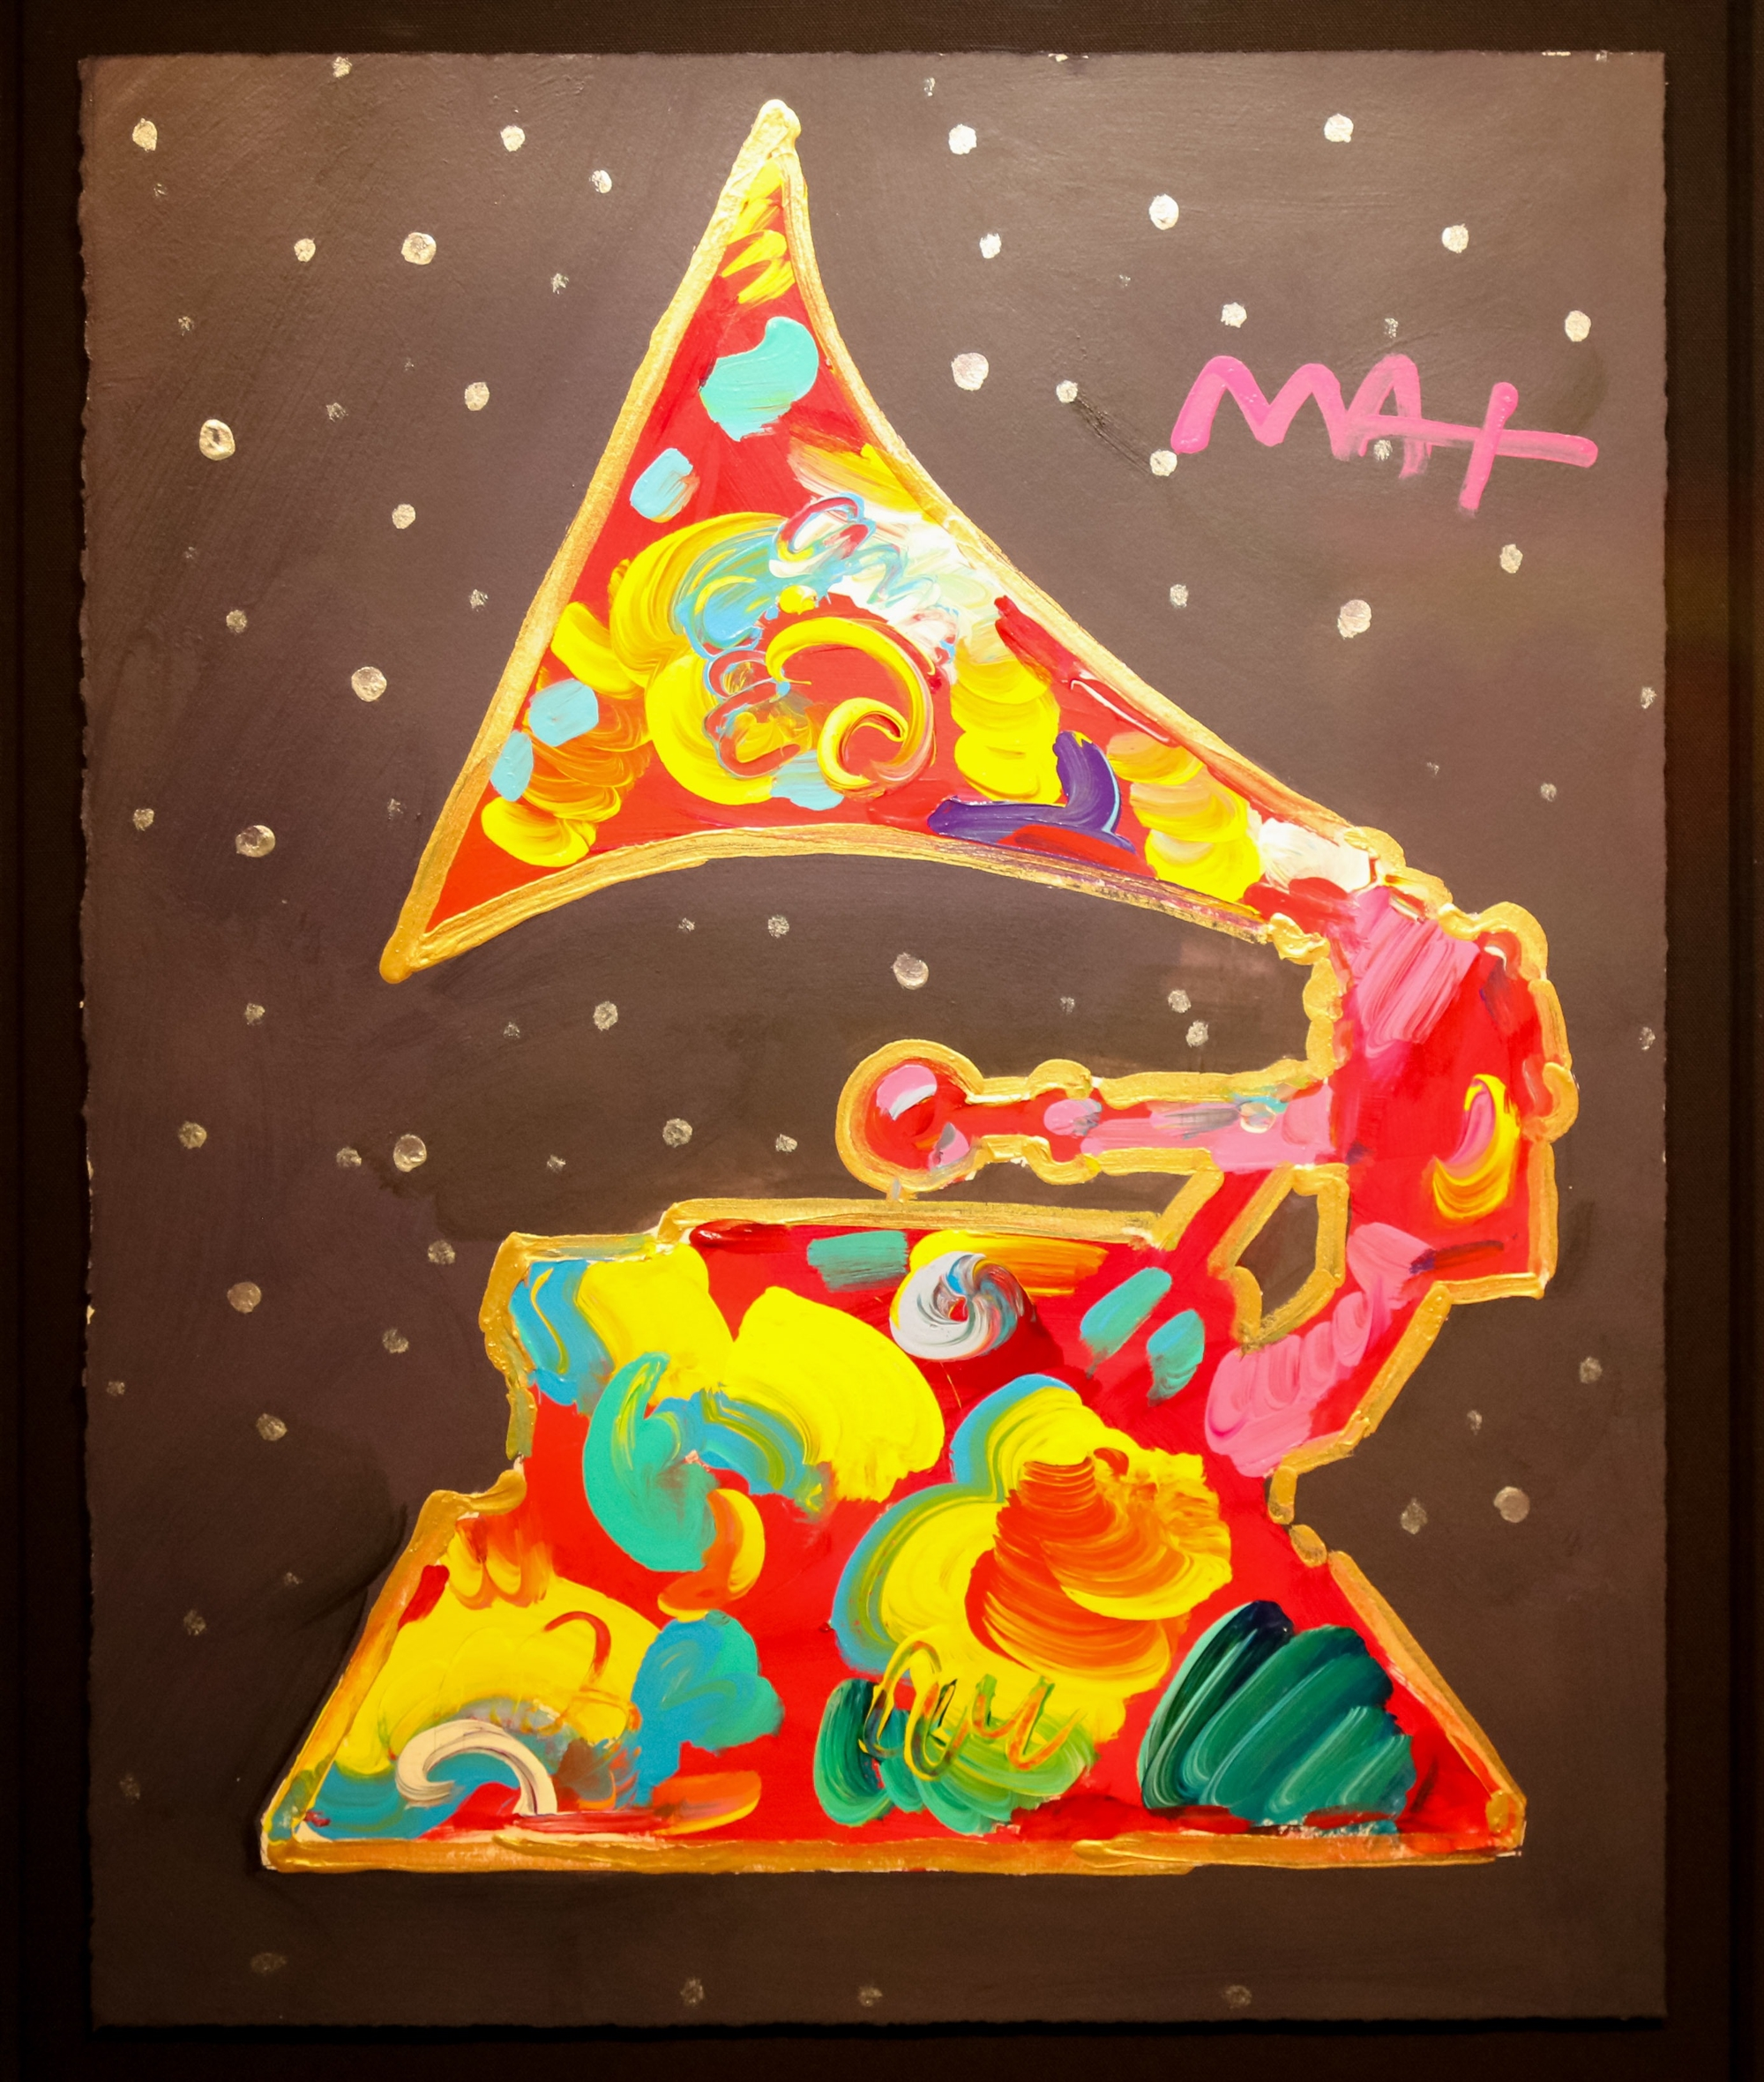 GRAMMY 1991 by Peter Max